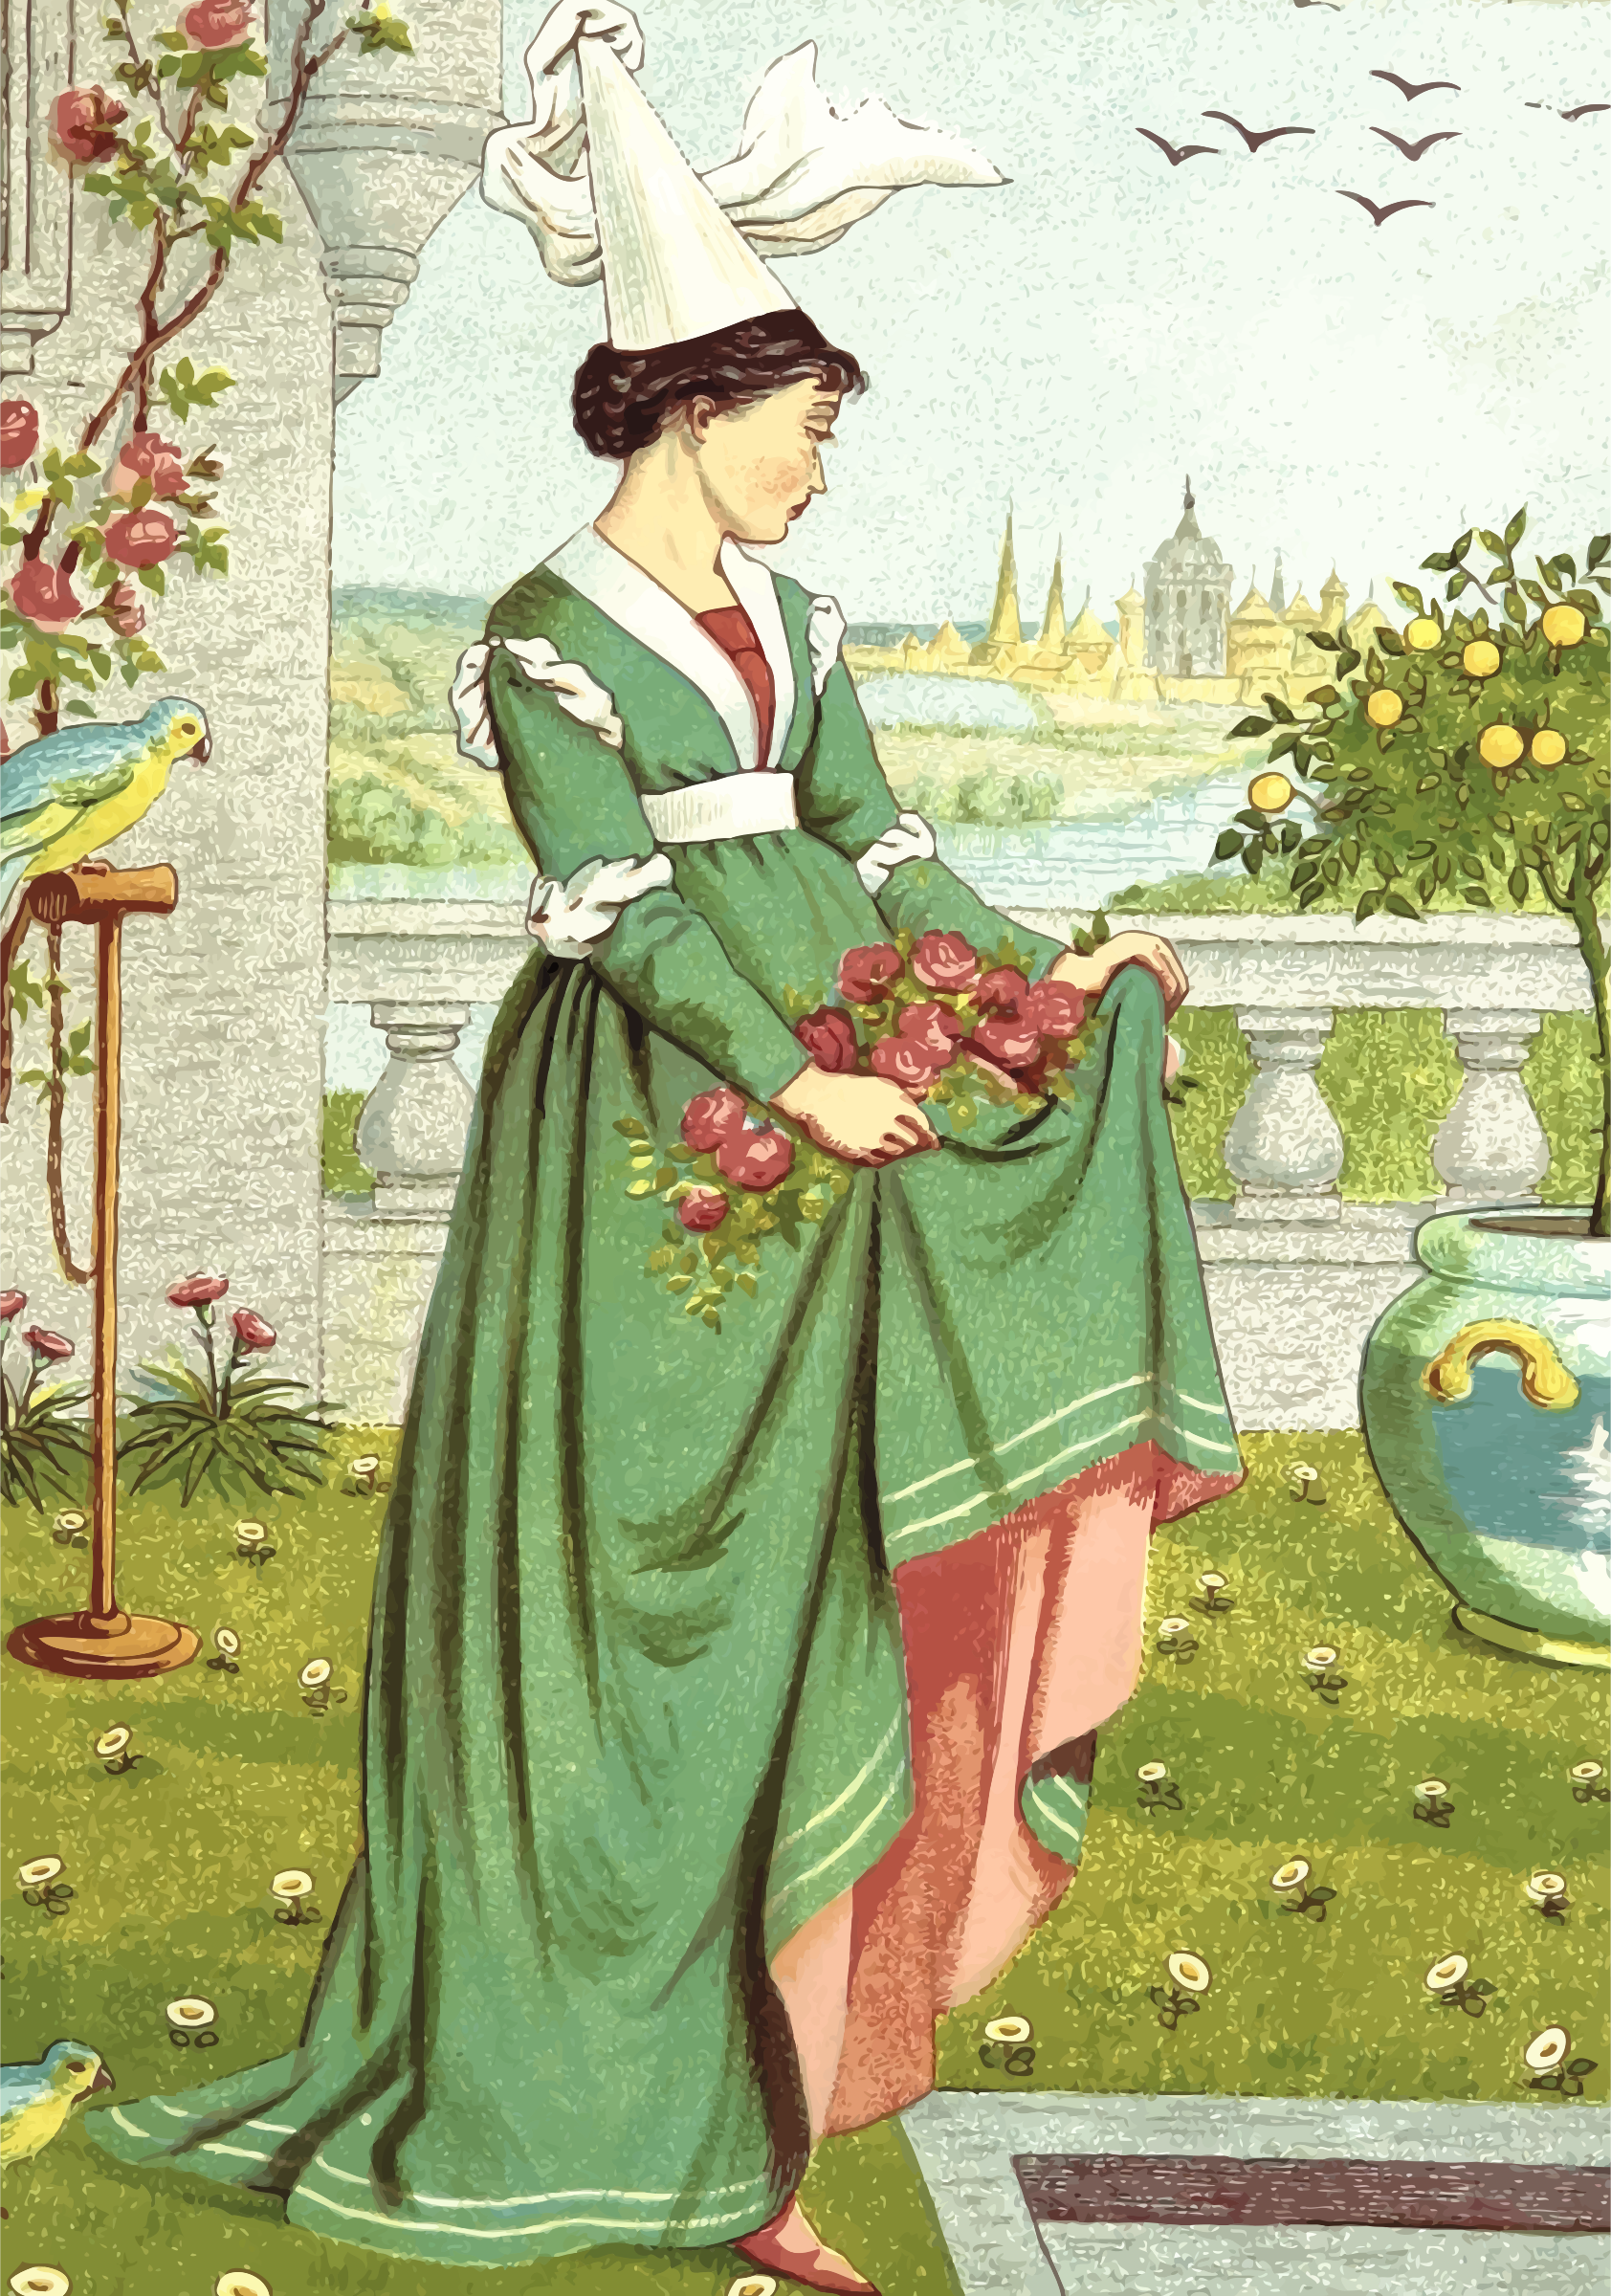 Picking flowers 3 by Firkin